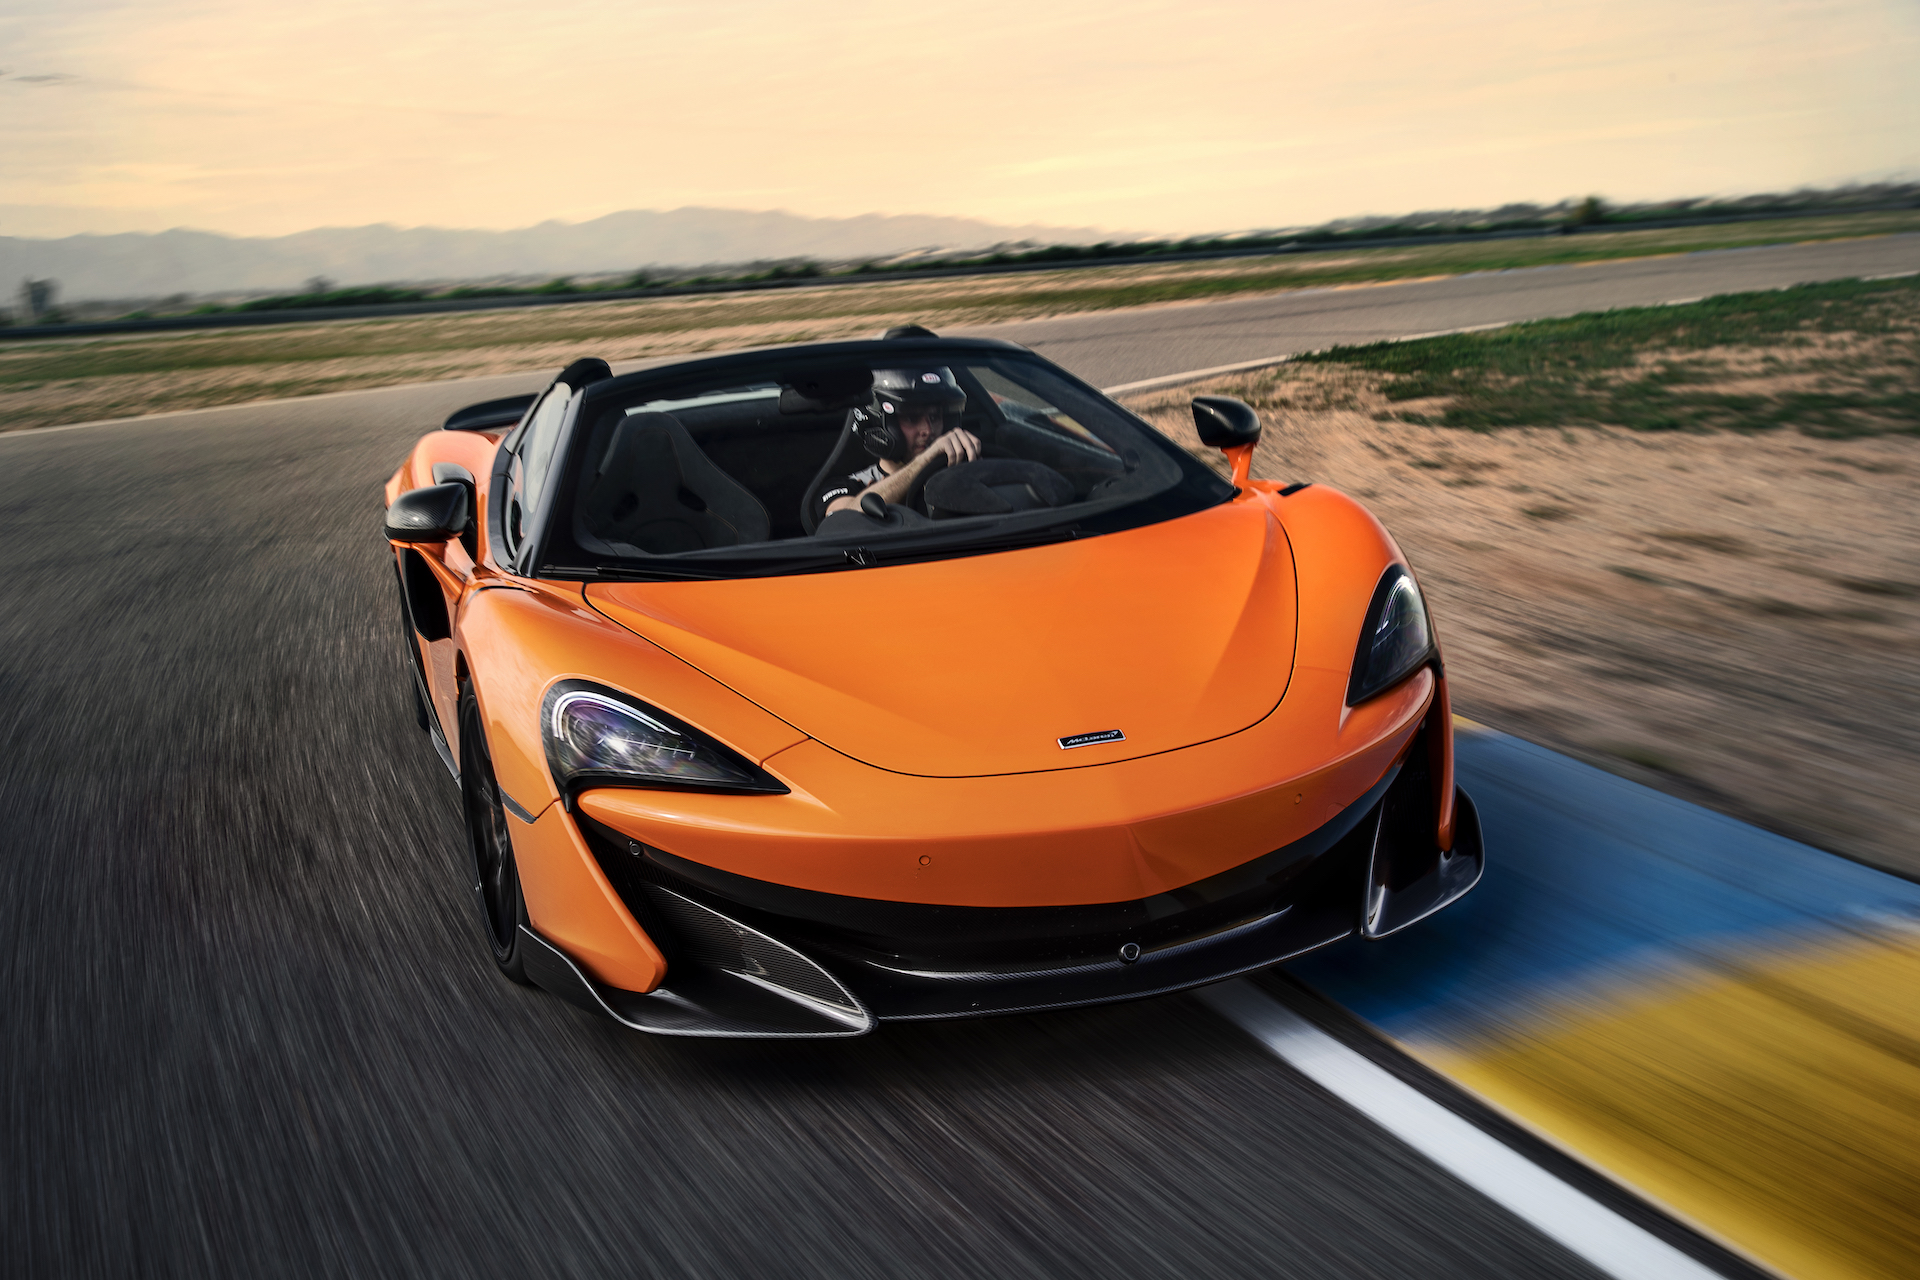 2020 McLaren 600LT Spider Color Myan Orange Front Three Quarter Wallpaper 21